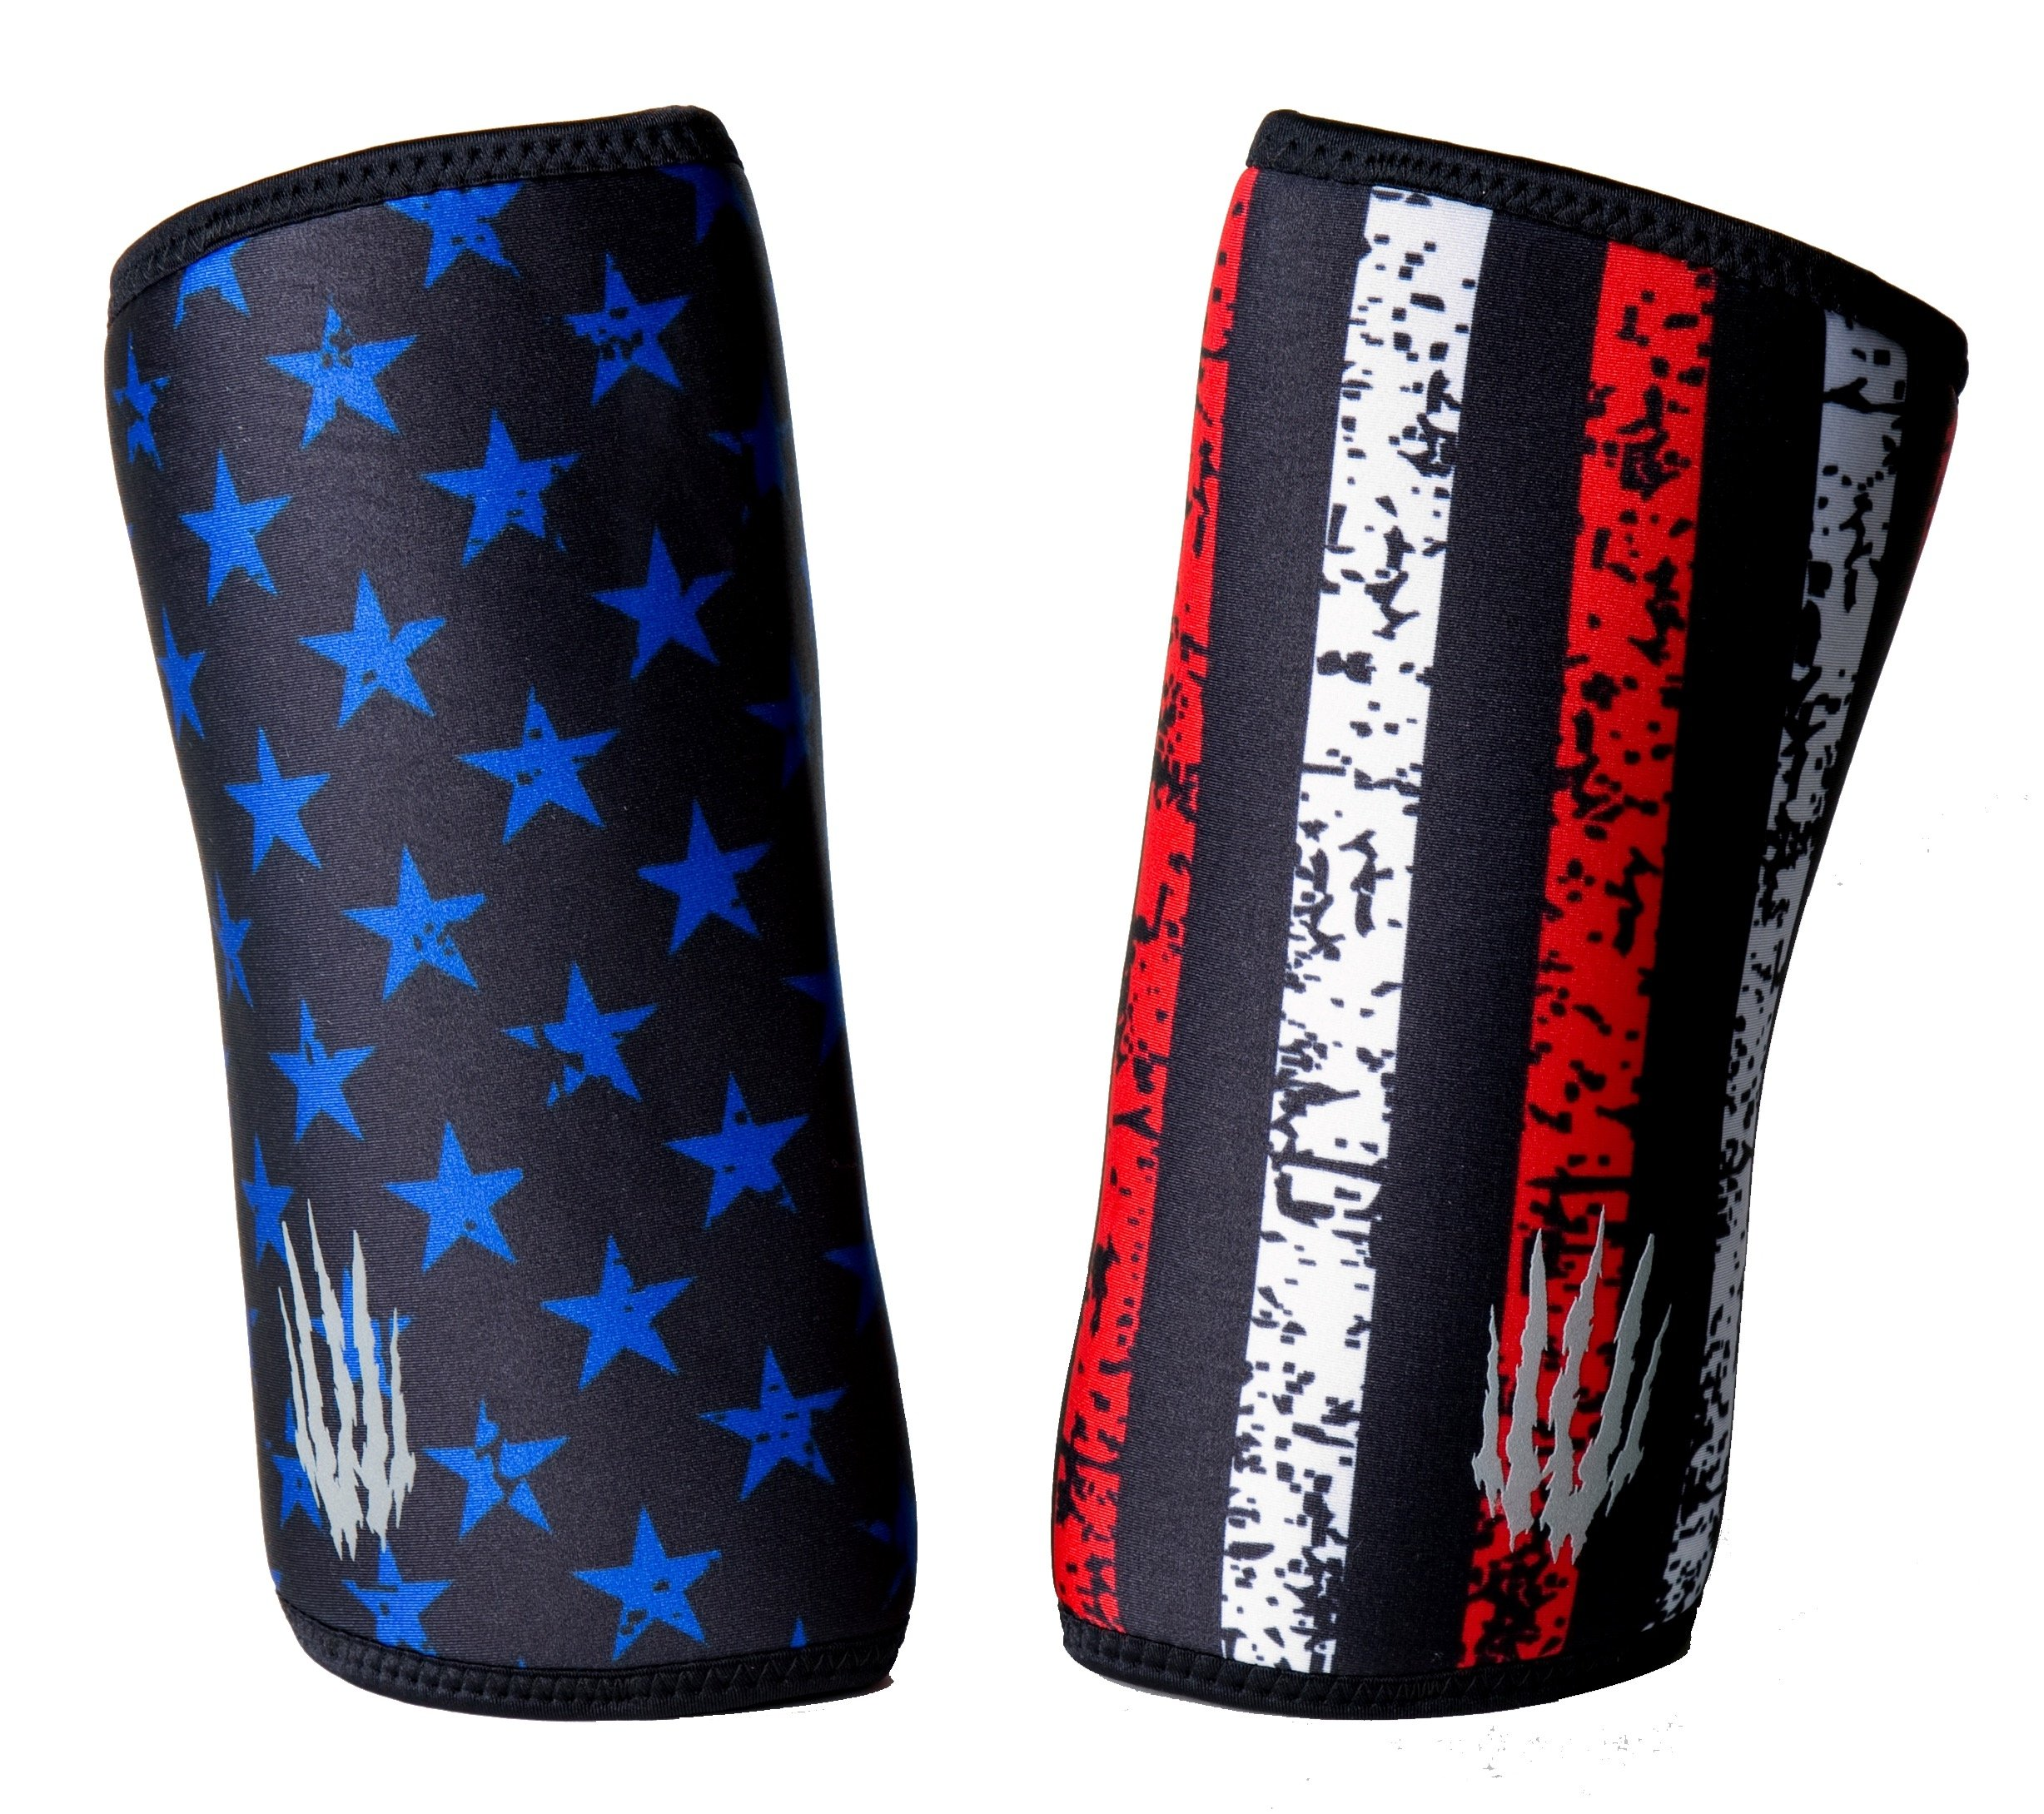 Bear KompleX Elbow Sleeves (Sold AS A Pair of 2) for Weightlifting, Powerlifting, Wrestling, Strongman, Bench Press, Cross Fitness, and More. Compression Sleeves Come in 5mm Thickness Elbow Star M